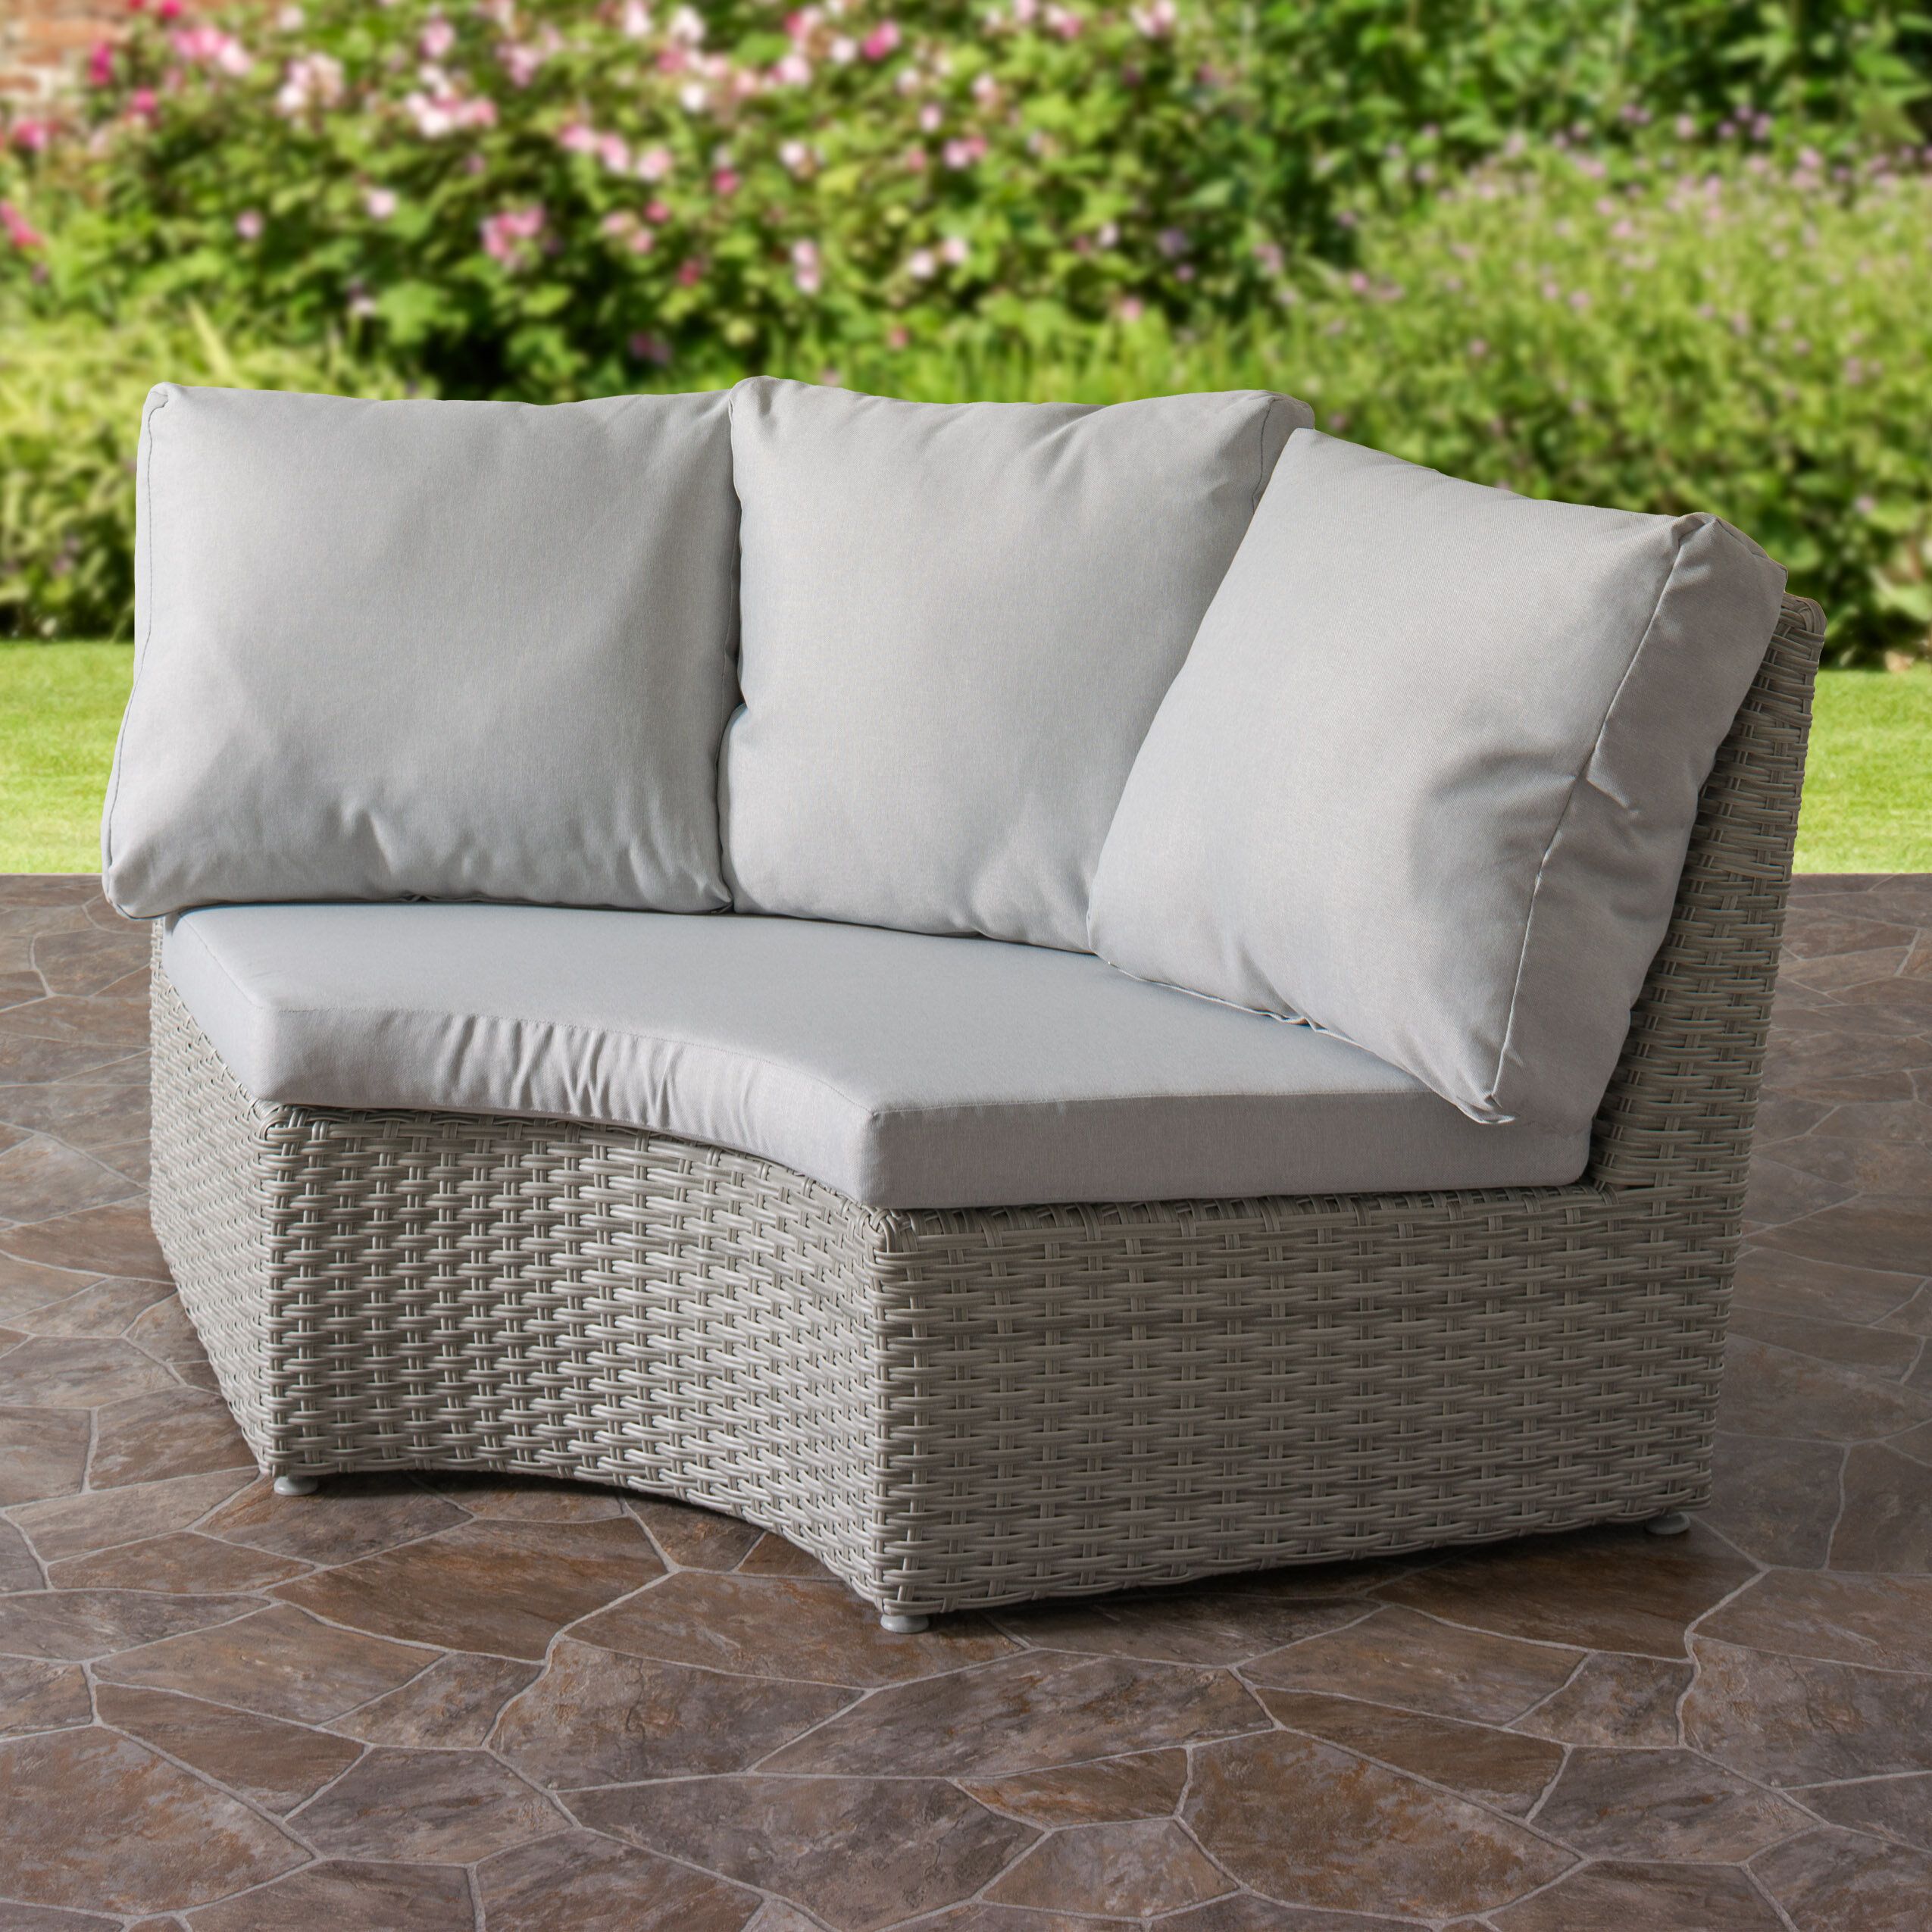 Rosecliff Heights Killingworth Weather Resistant Resin Wicker Patio ...